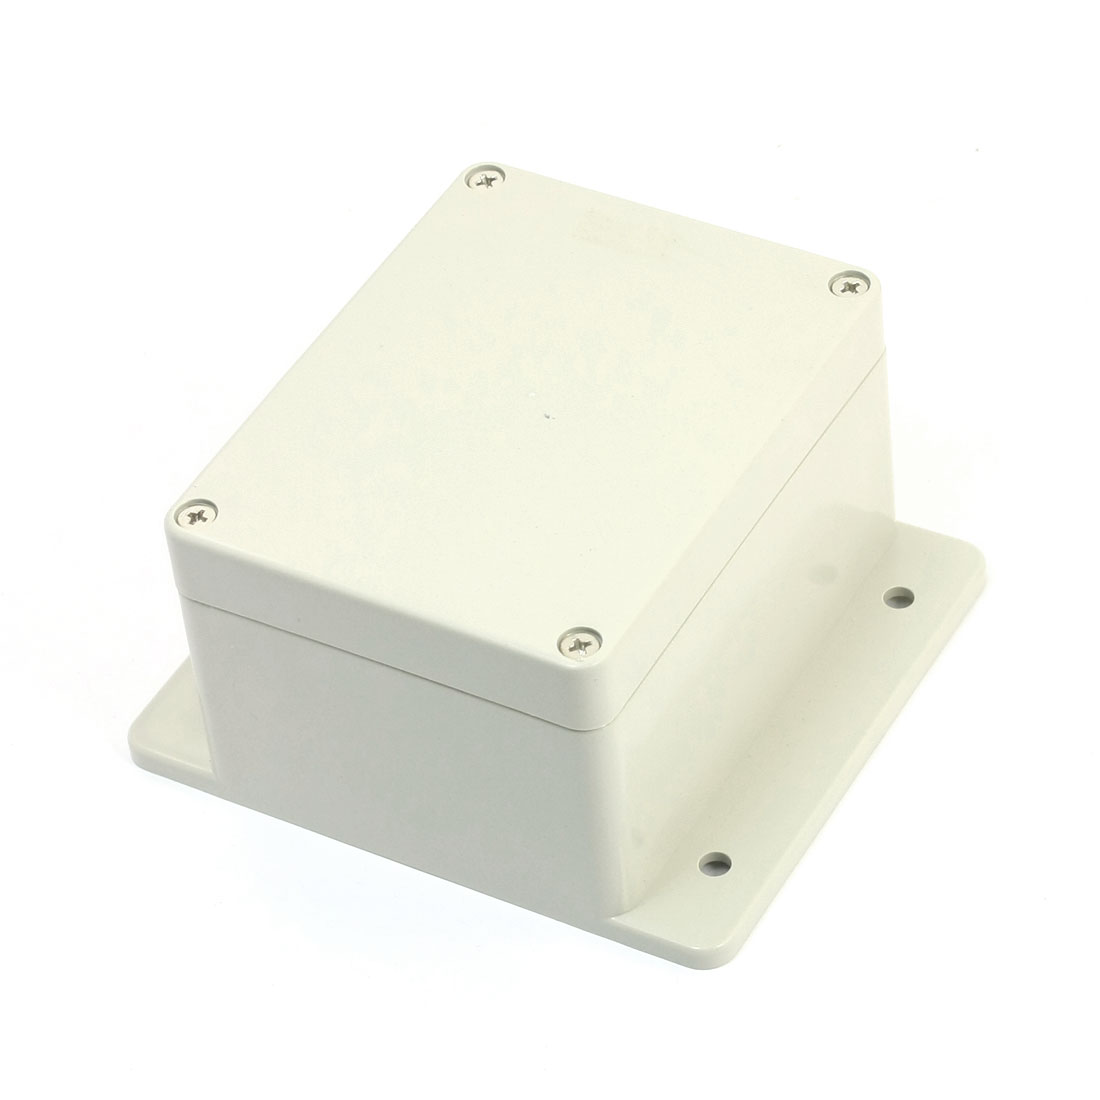 Sealed Plastic Enclosure Electronic Switch Junction Box Case 115x90x68mm